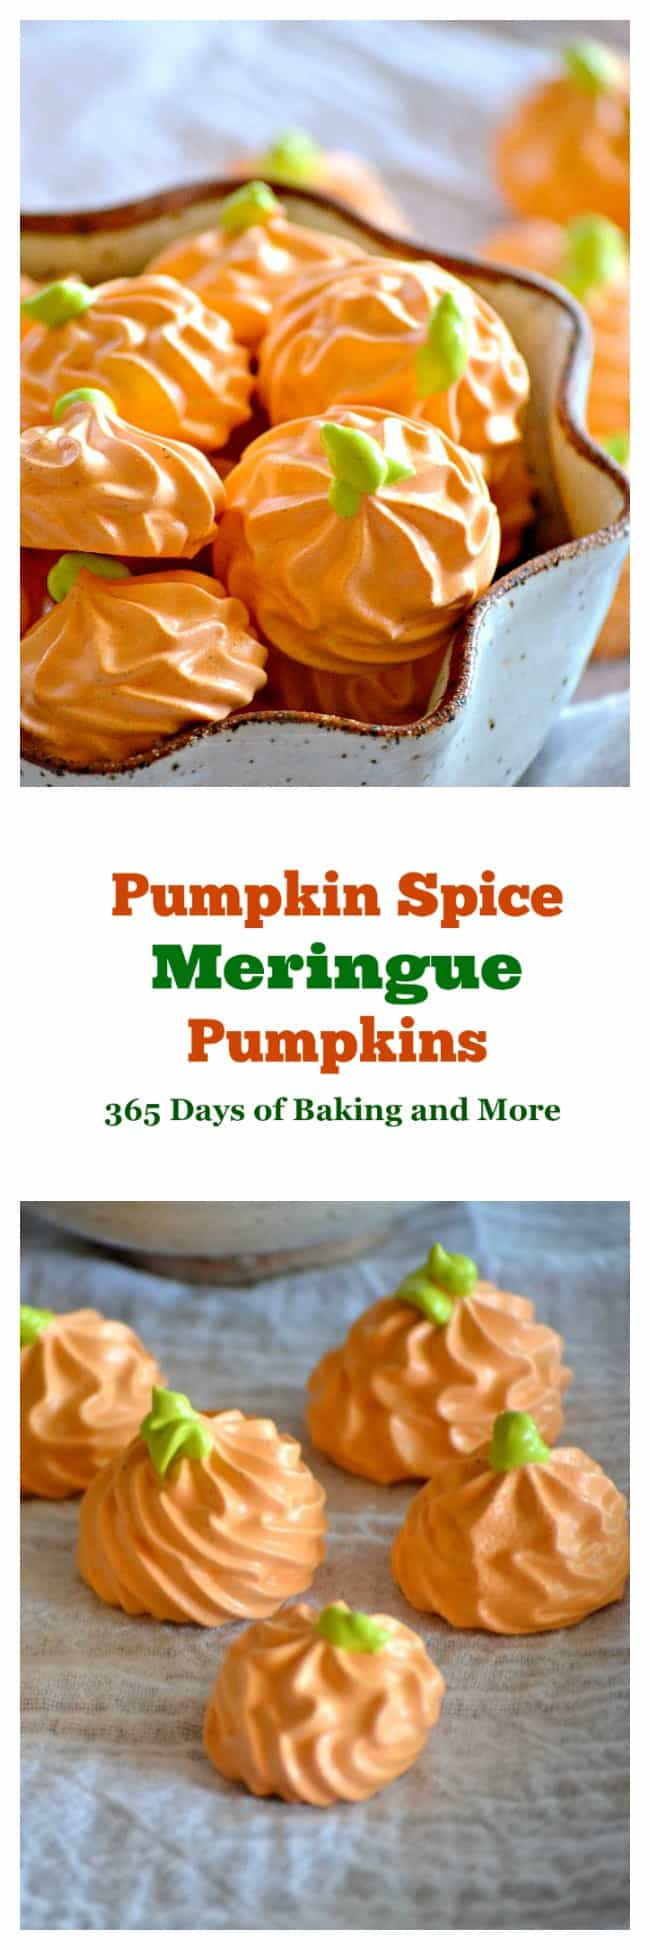 Pumpkin Spice Meringue Pumpkins - flavored with the great taste of Fall, this colorful treat will please both kids and adults. They'll be the perfect addition to your Halloween or Thanksgiving dessert tables!